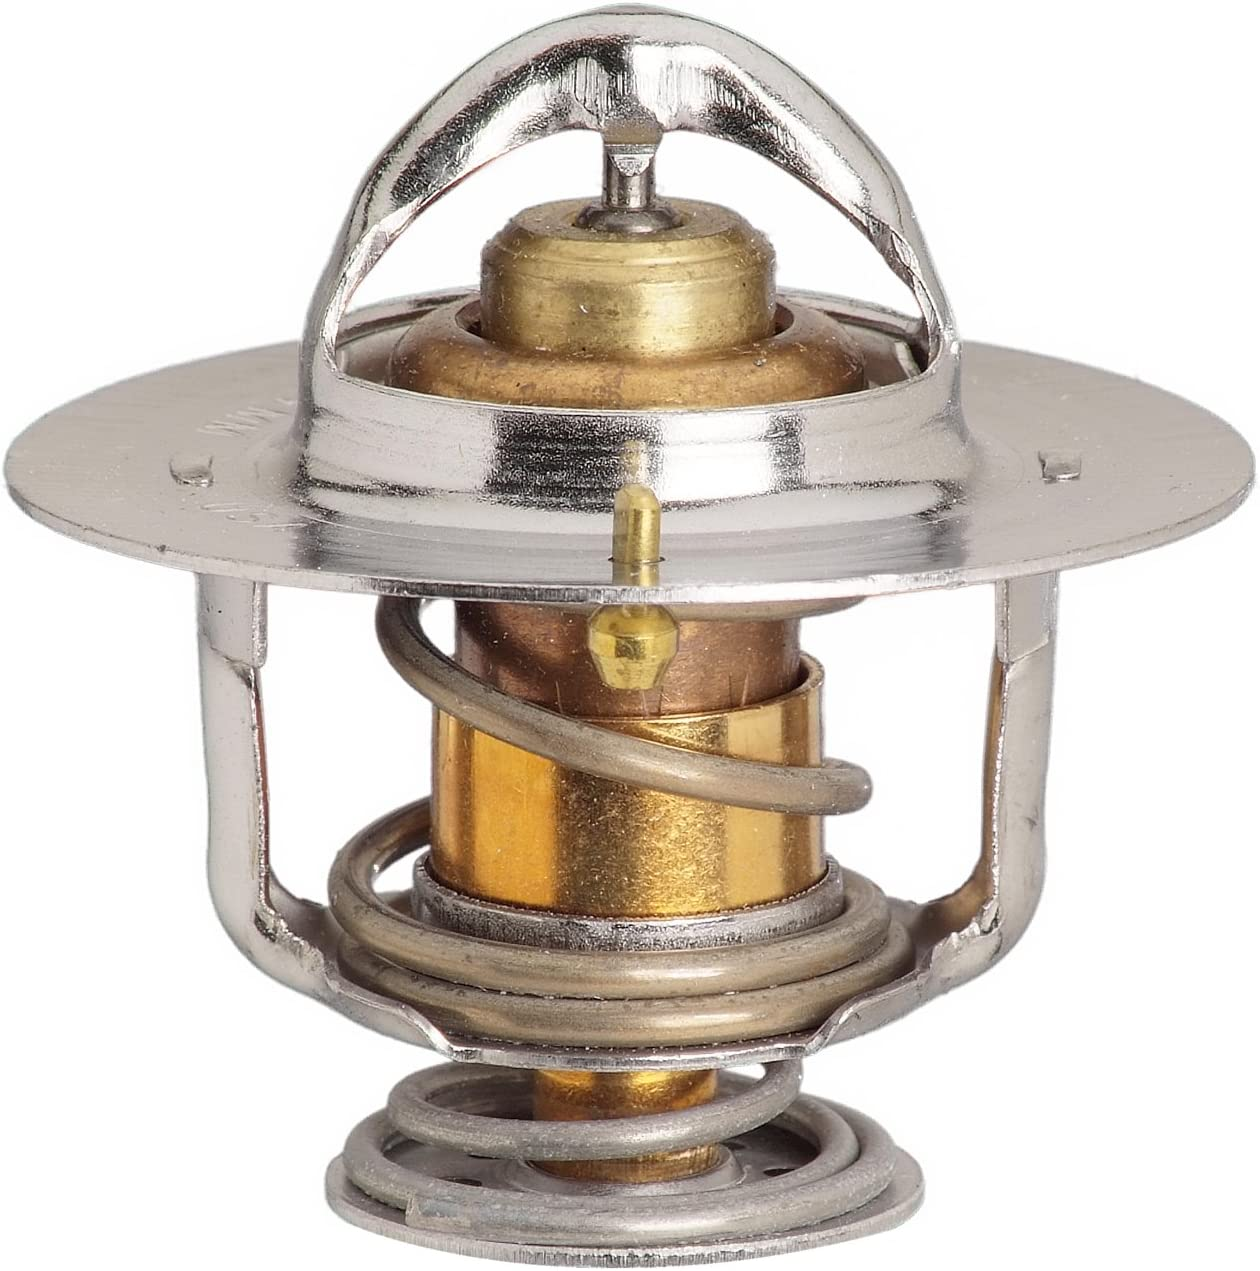 1 New Stant Thermostat-OE Superstat Thermostat 45778